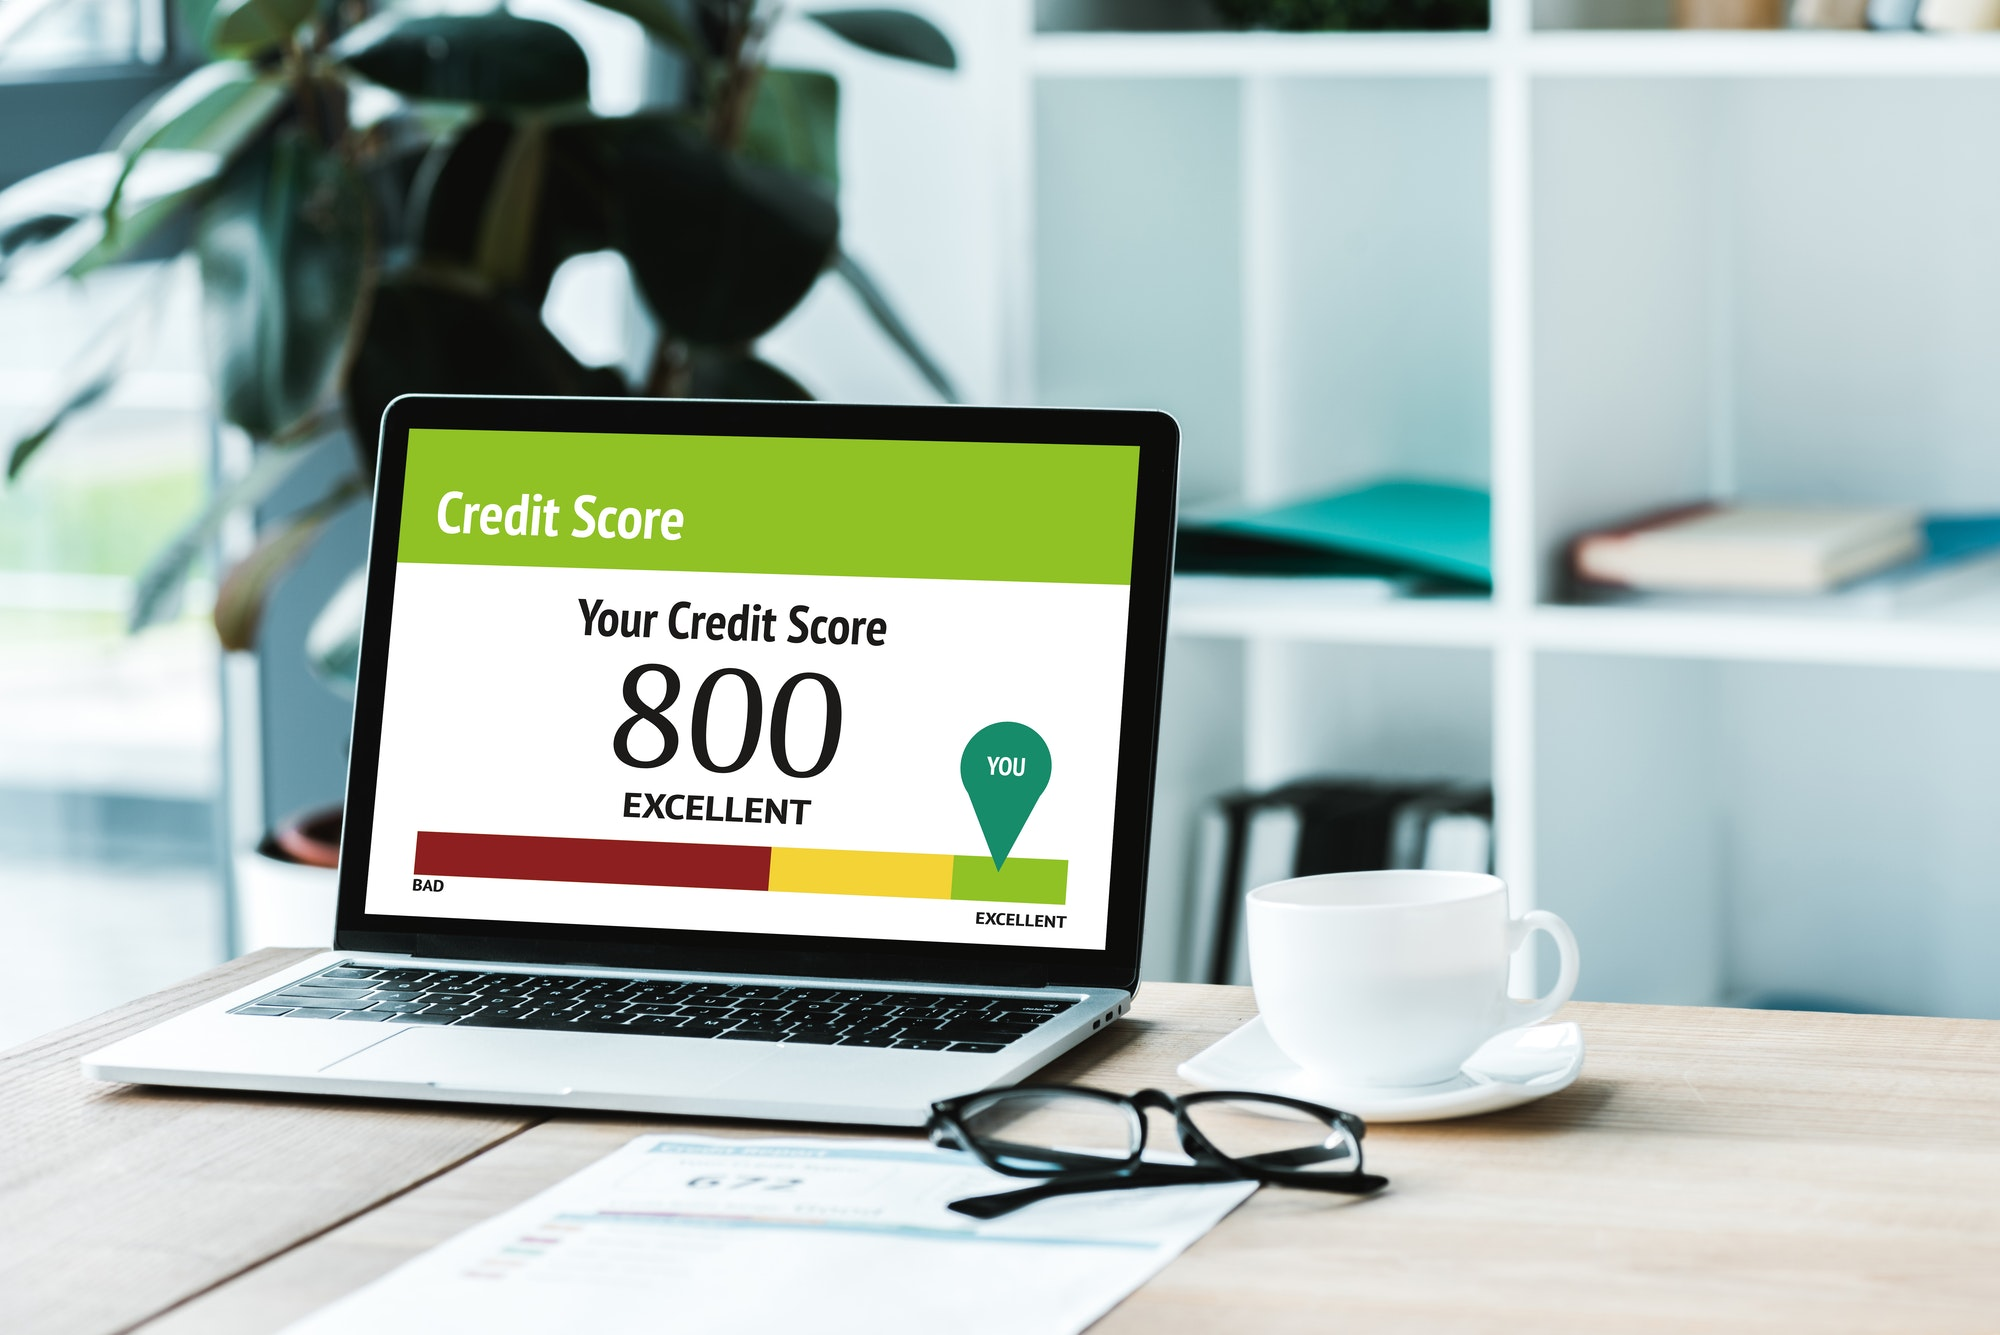 cup of coffee near laptop with credit score lettering and numbers on screen